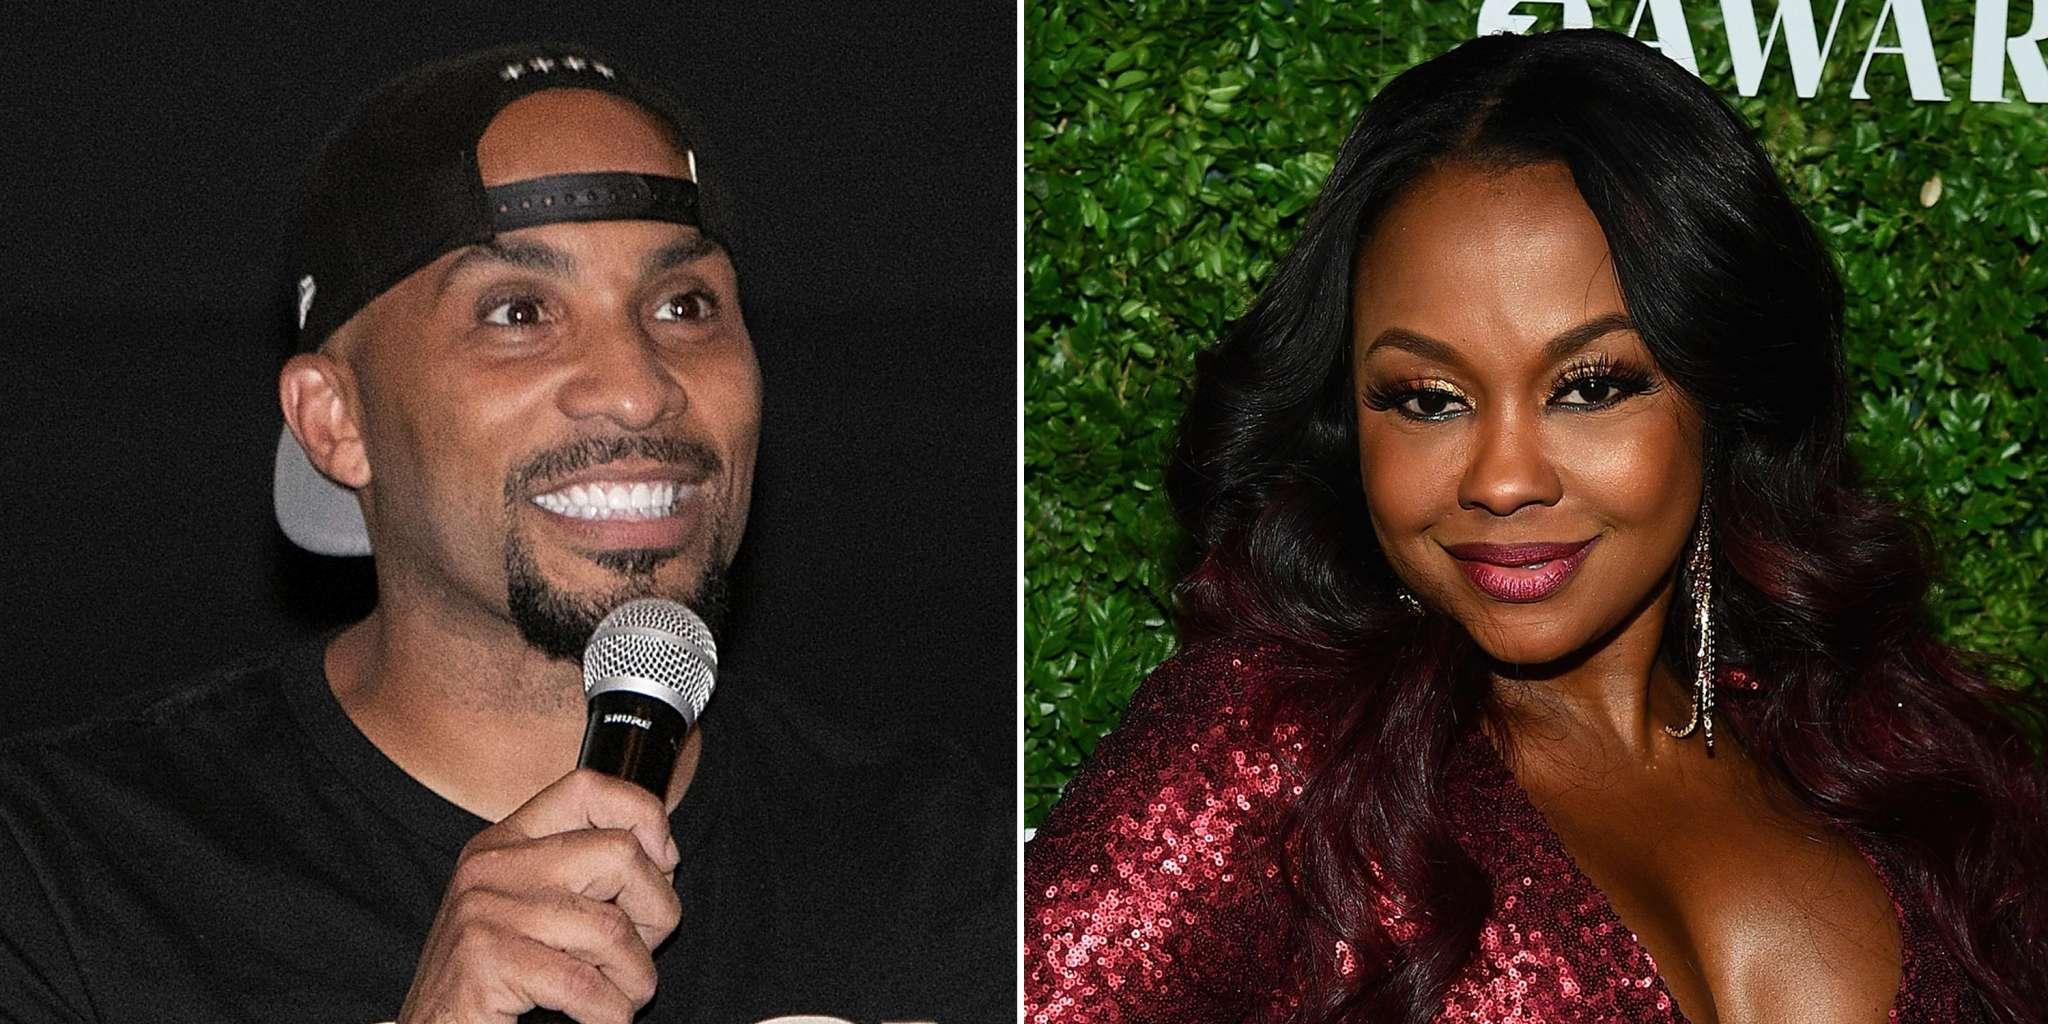 Phaedra Parks Gushes Over Her Man: She Looks Gorgeous In Her Latest Post With Tone Kapone